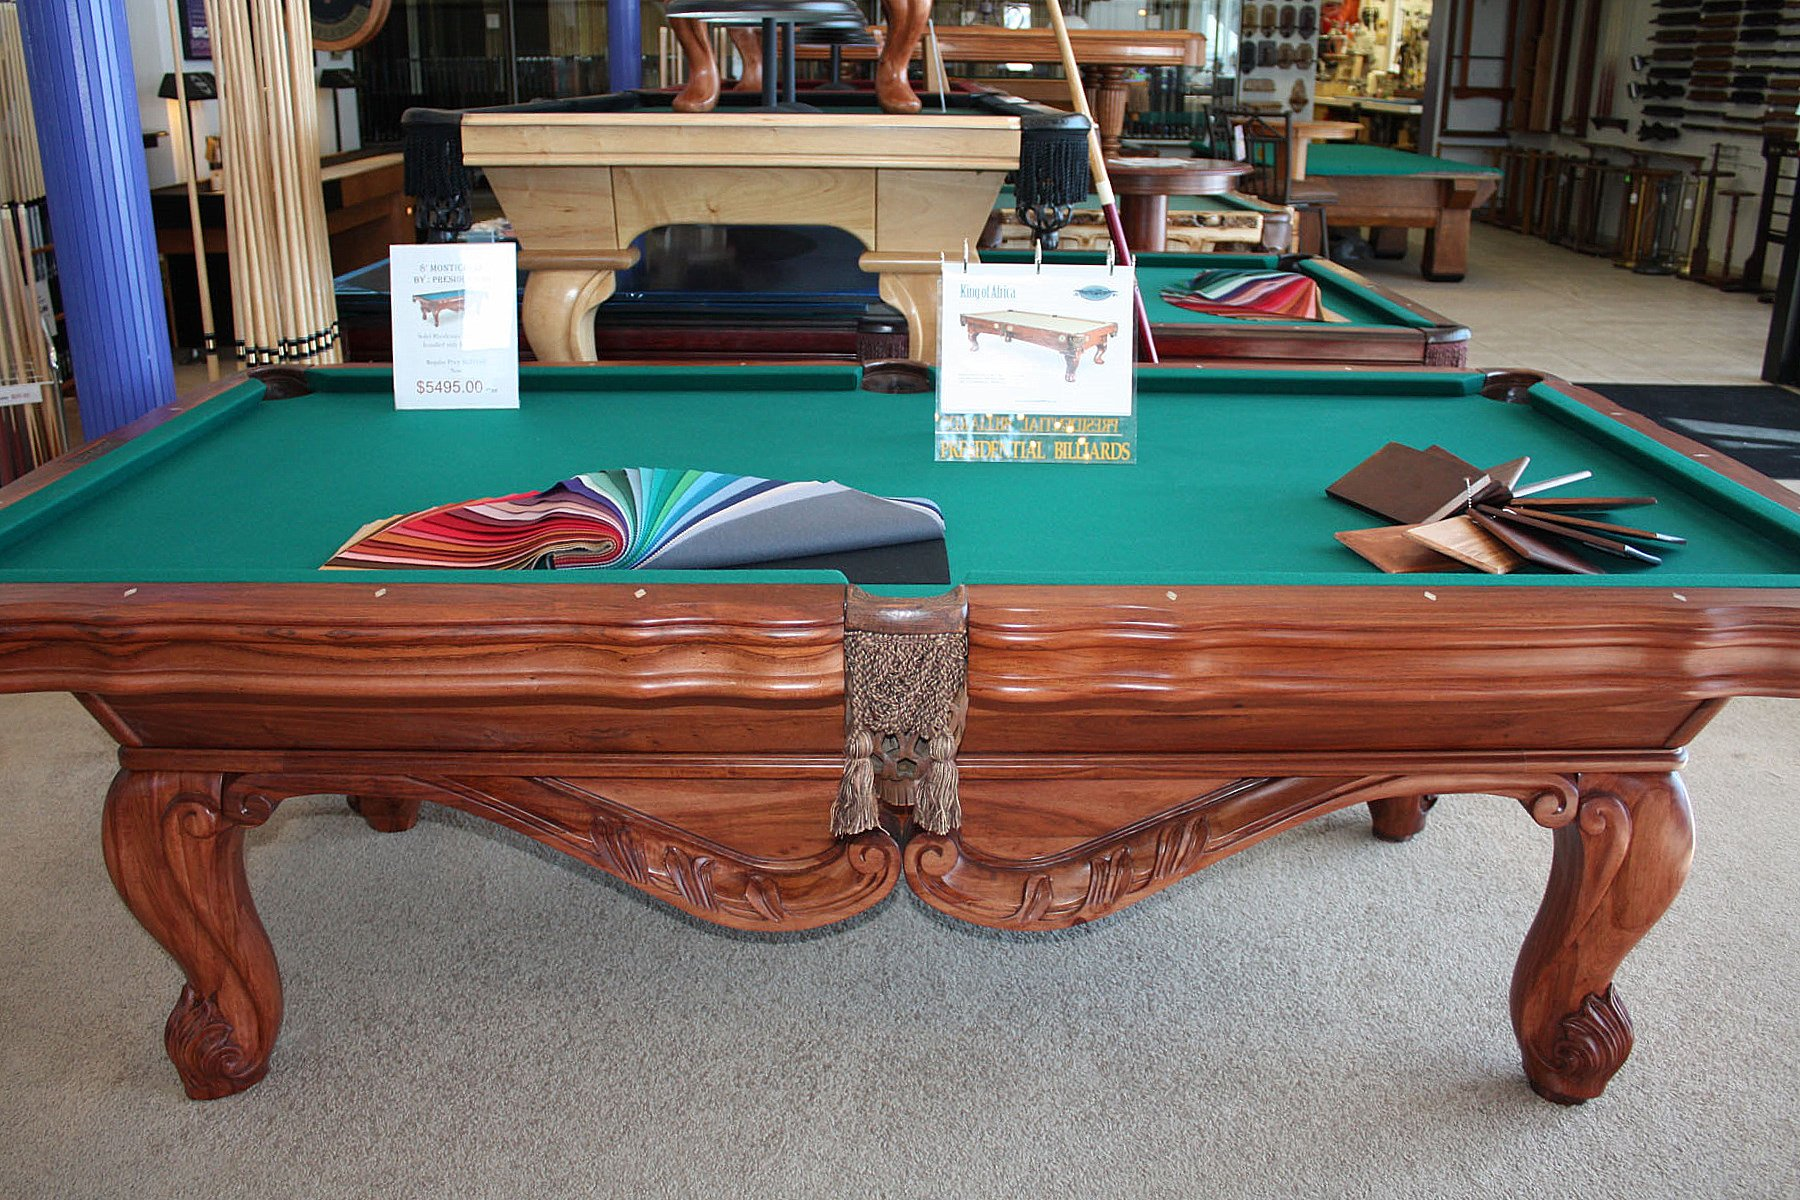 denver pool table service recover company is Best Quality Billiards